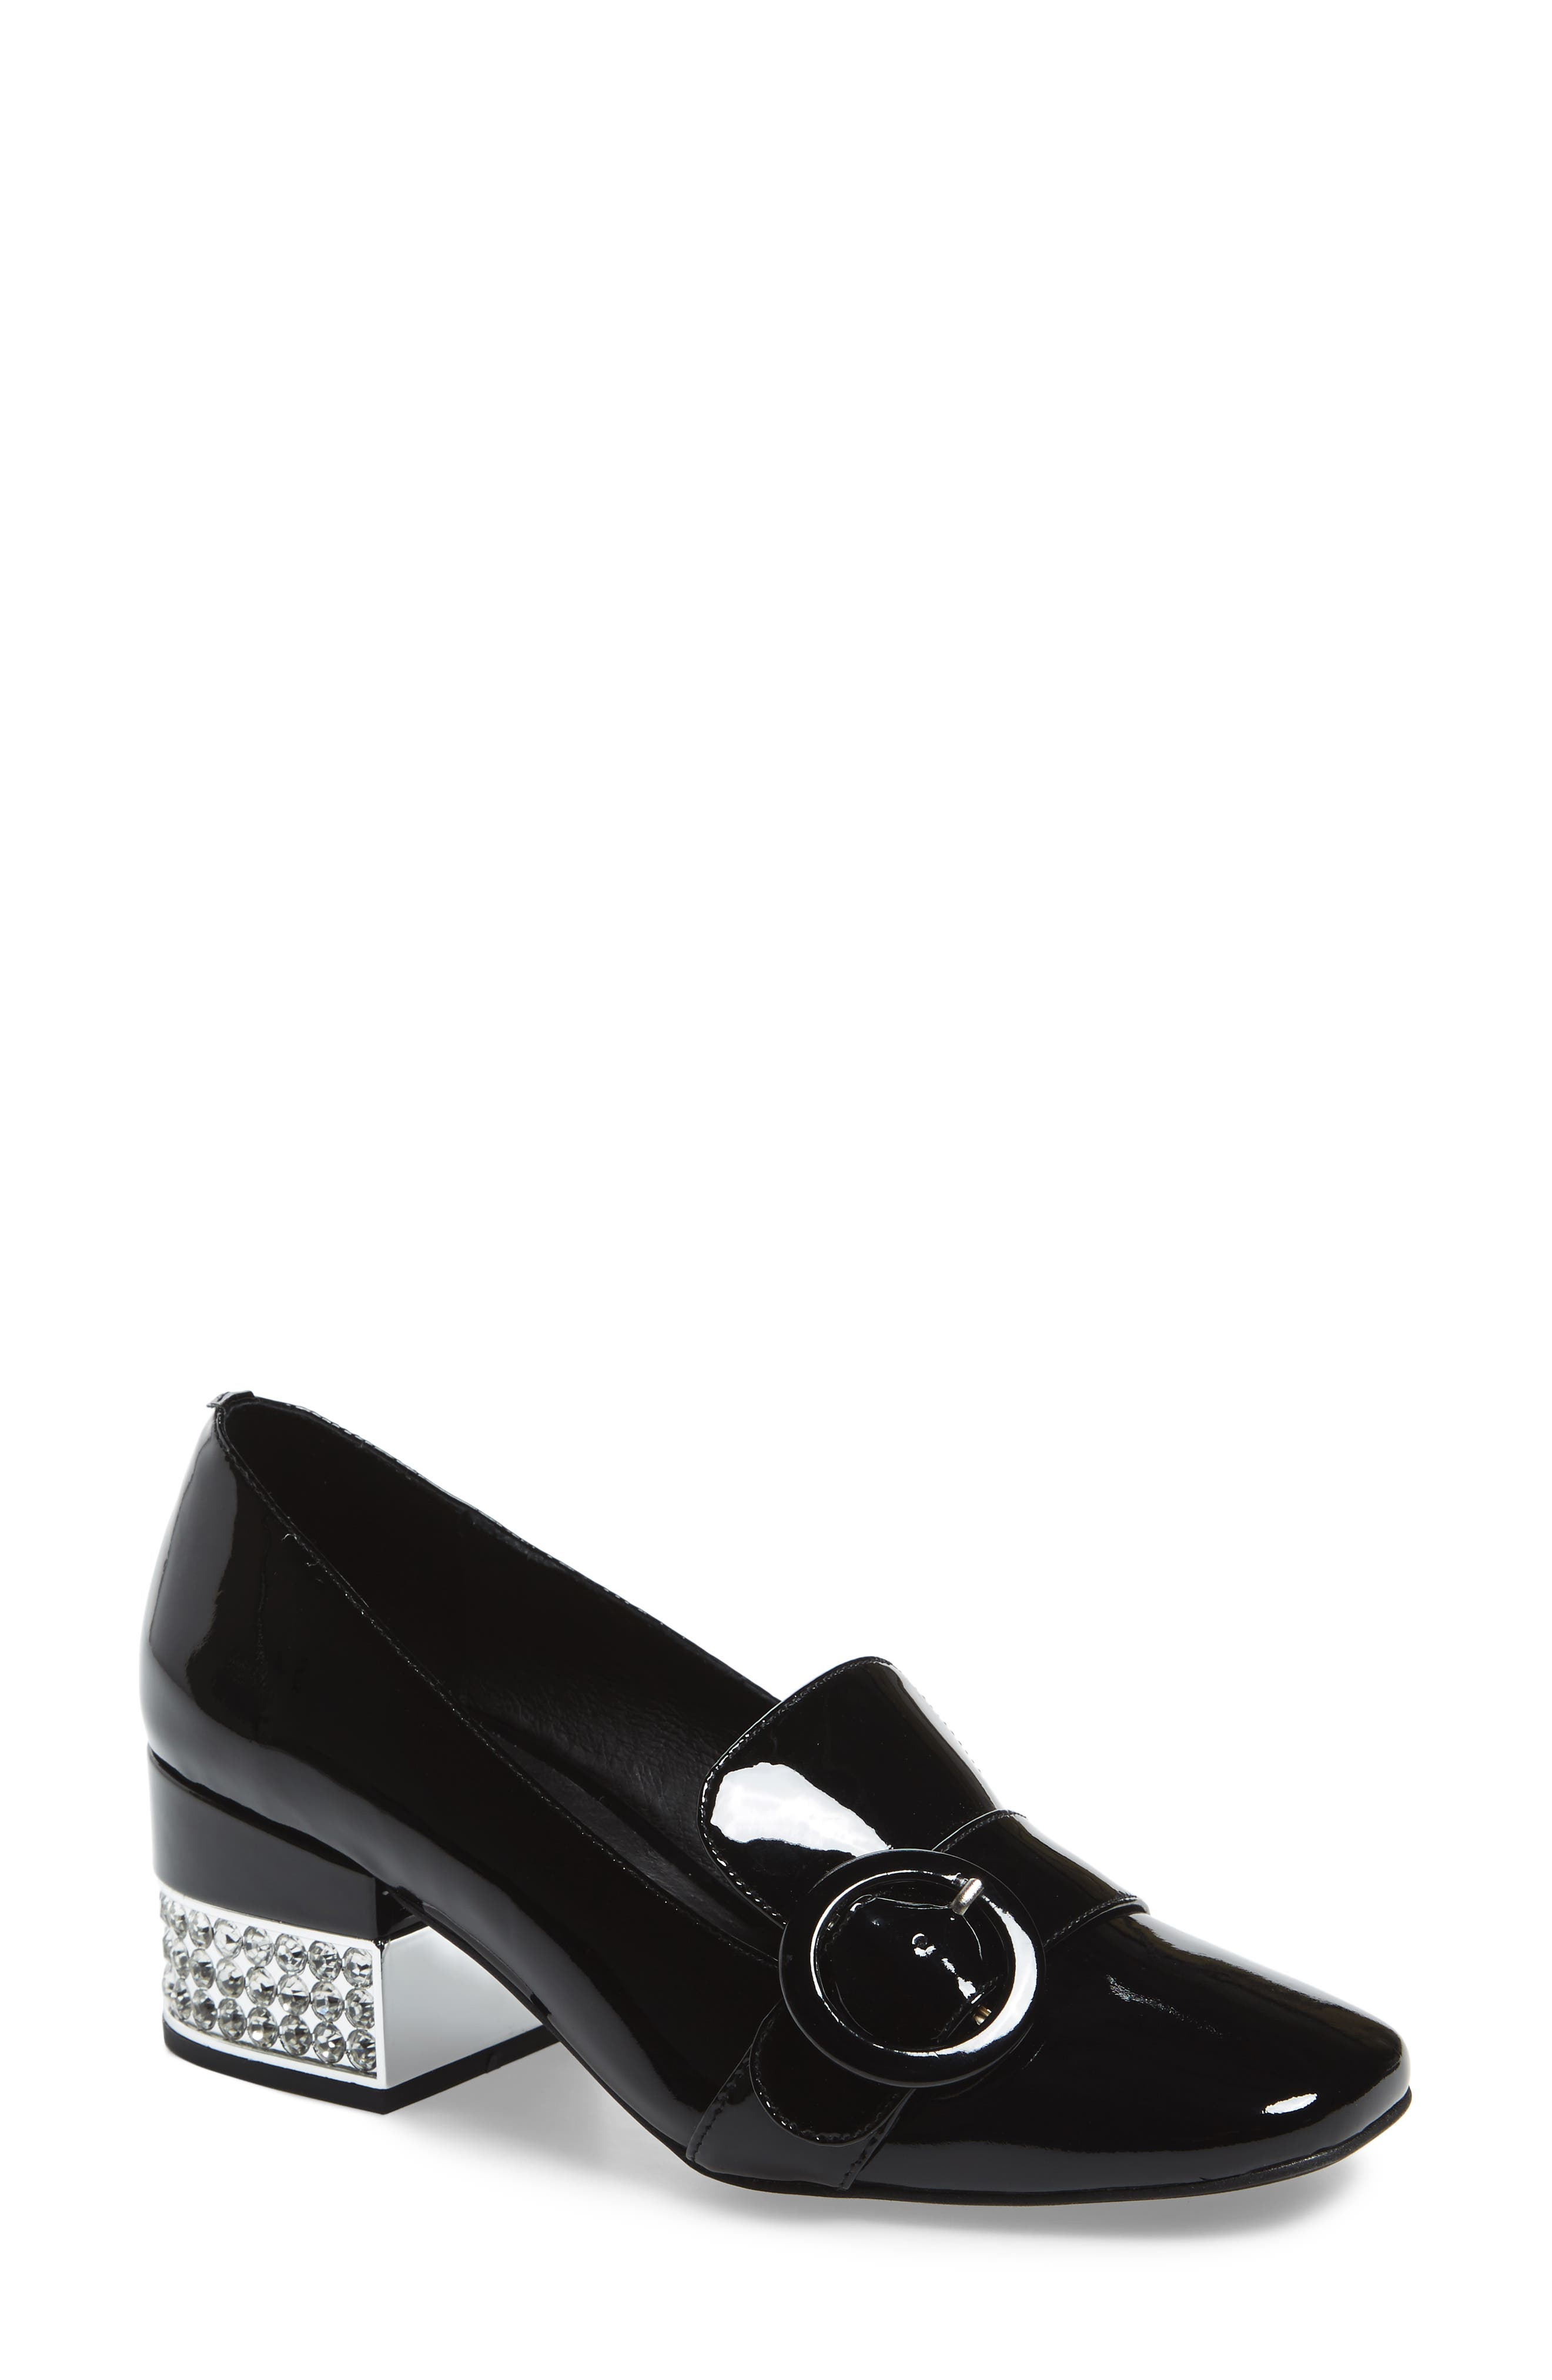 Louisa Pump,                             Main thumbnail 1, color,                             BLACK/ SILVER PATENT LEATHER